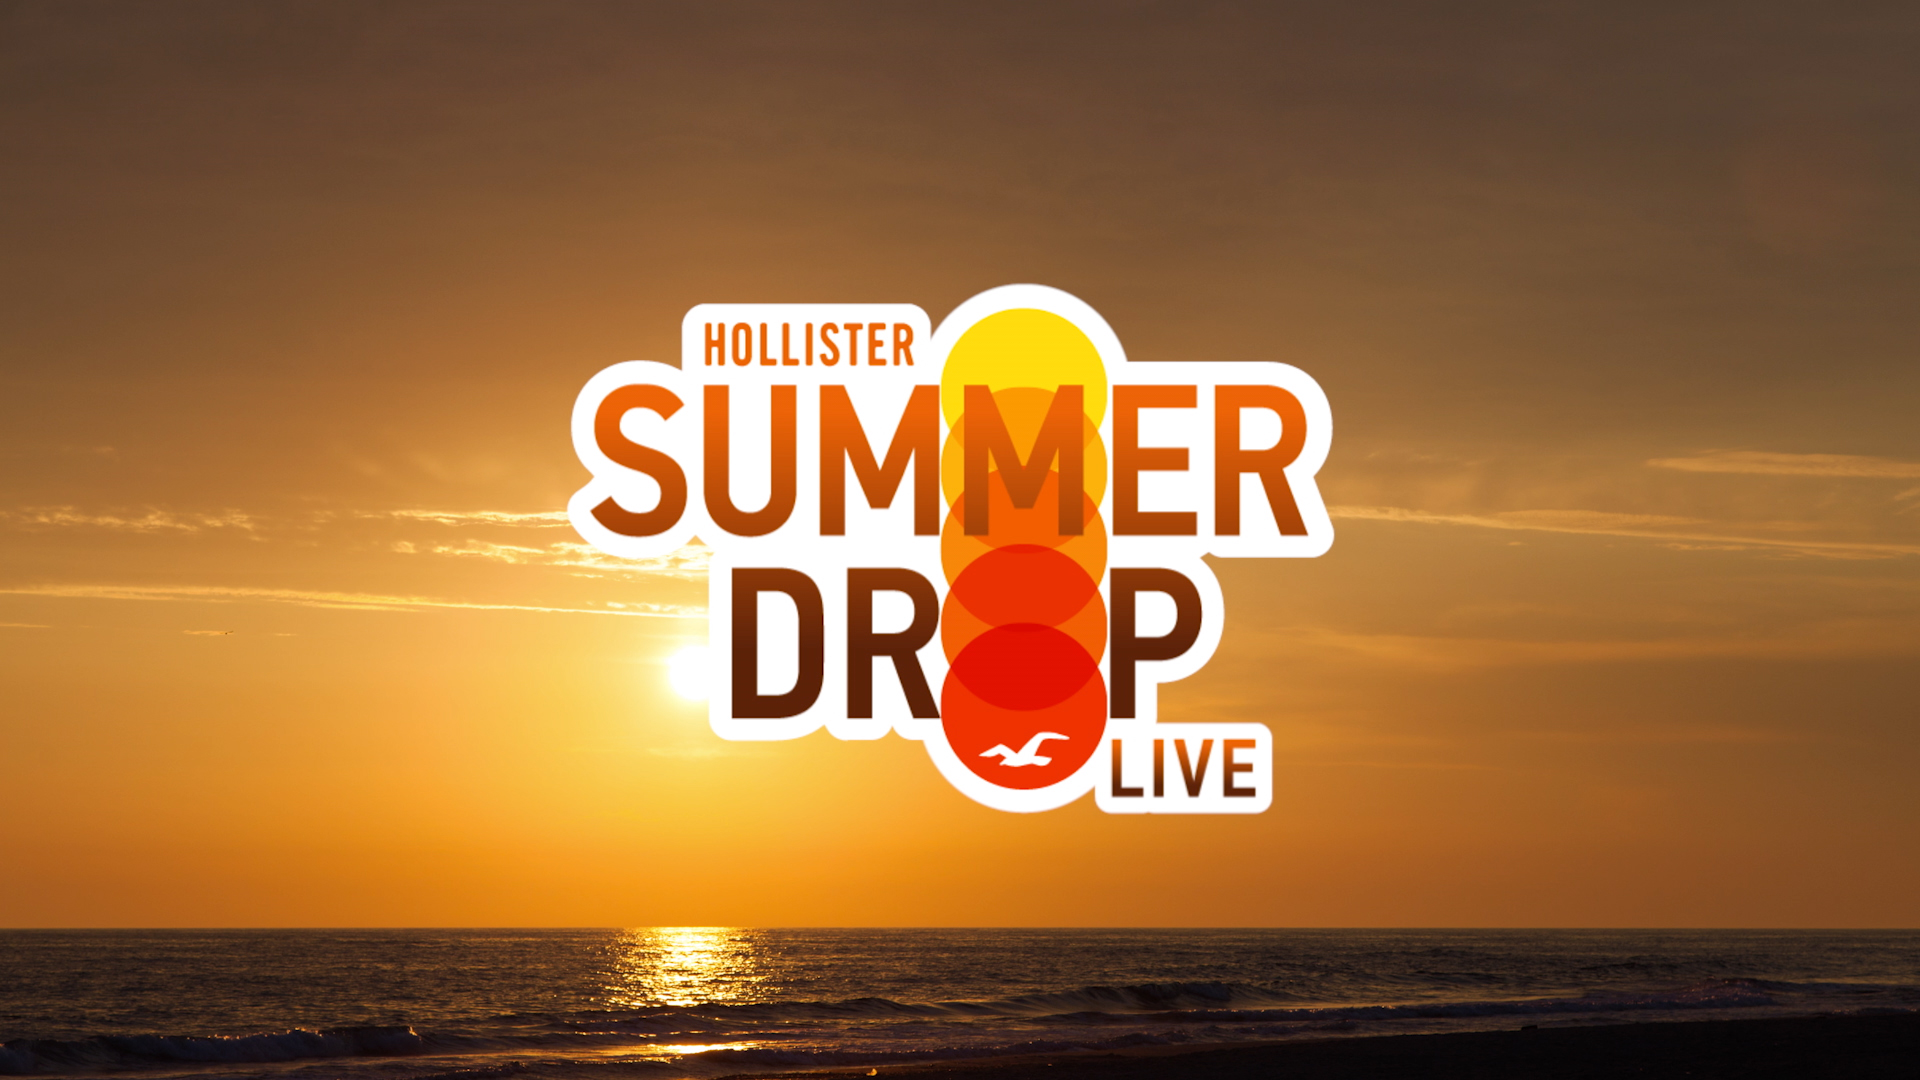 HCO_SUMMERDROP_HEADER